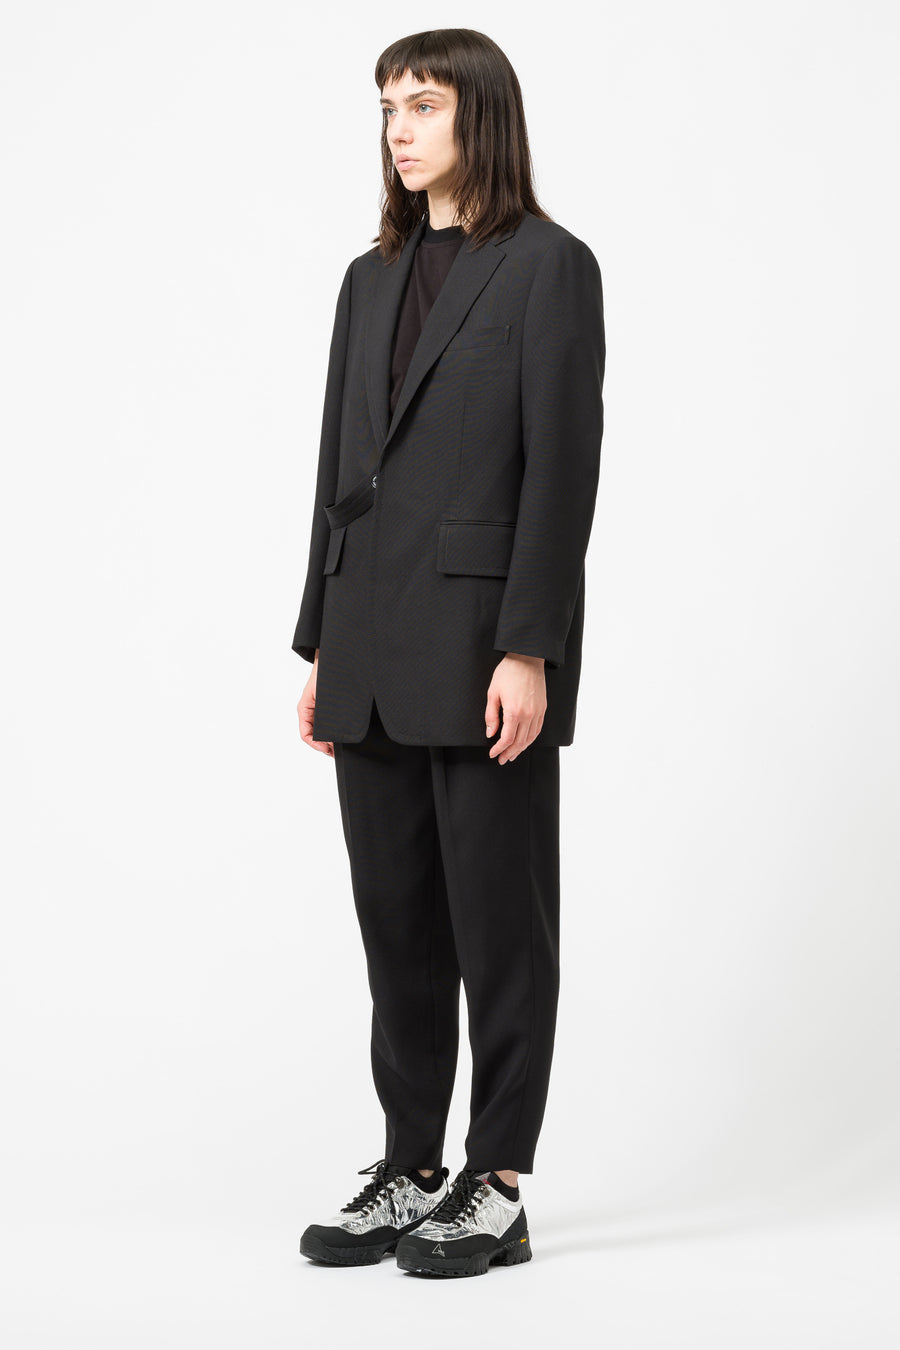 Hyke Woven Jacket in Black - Notre